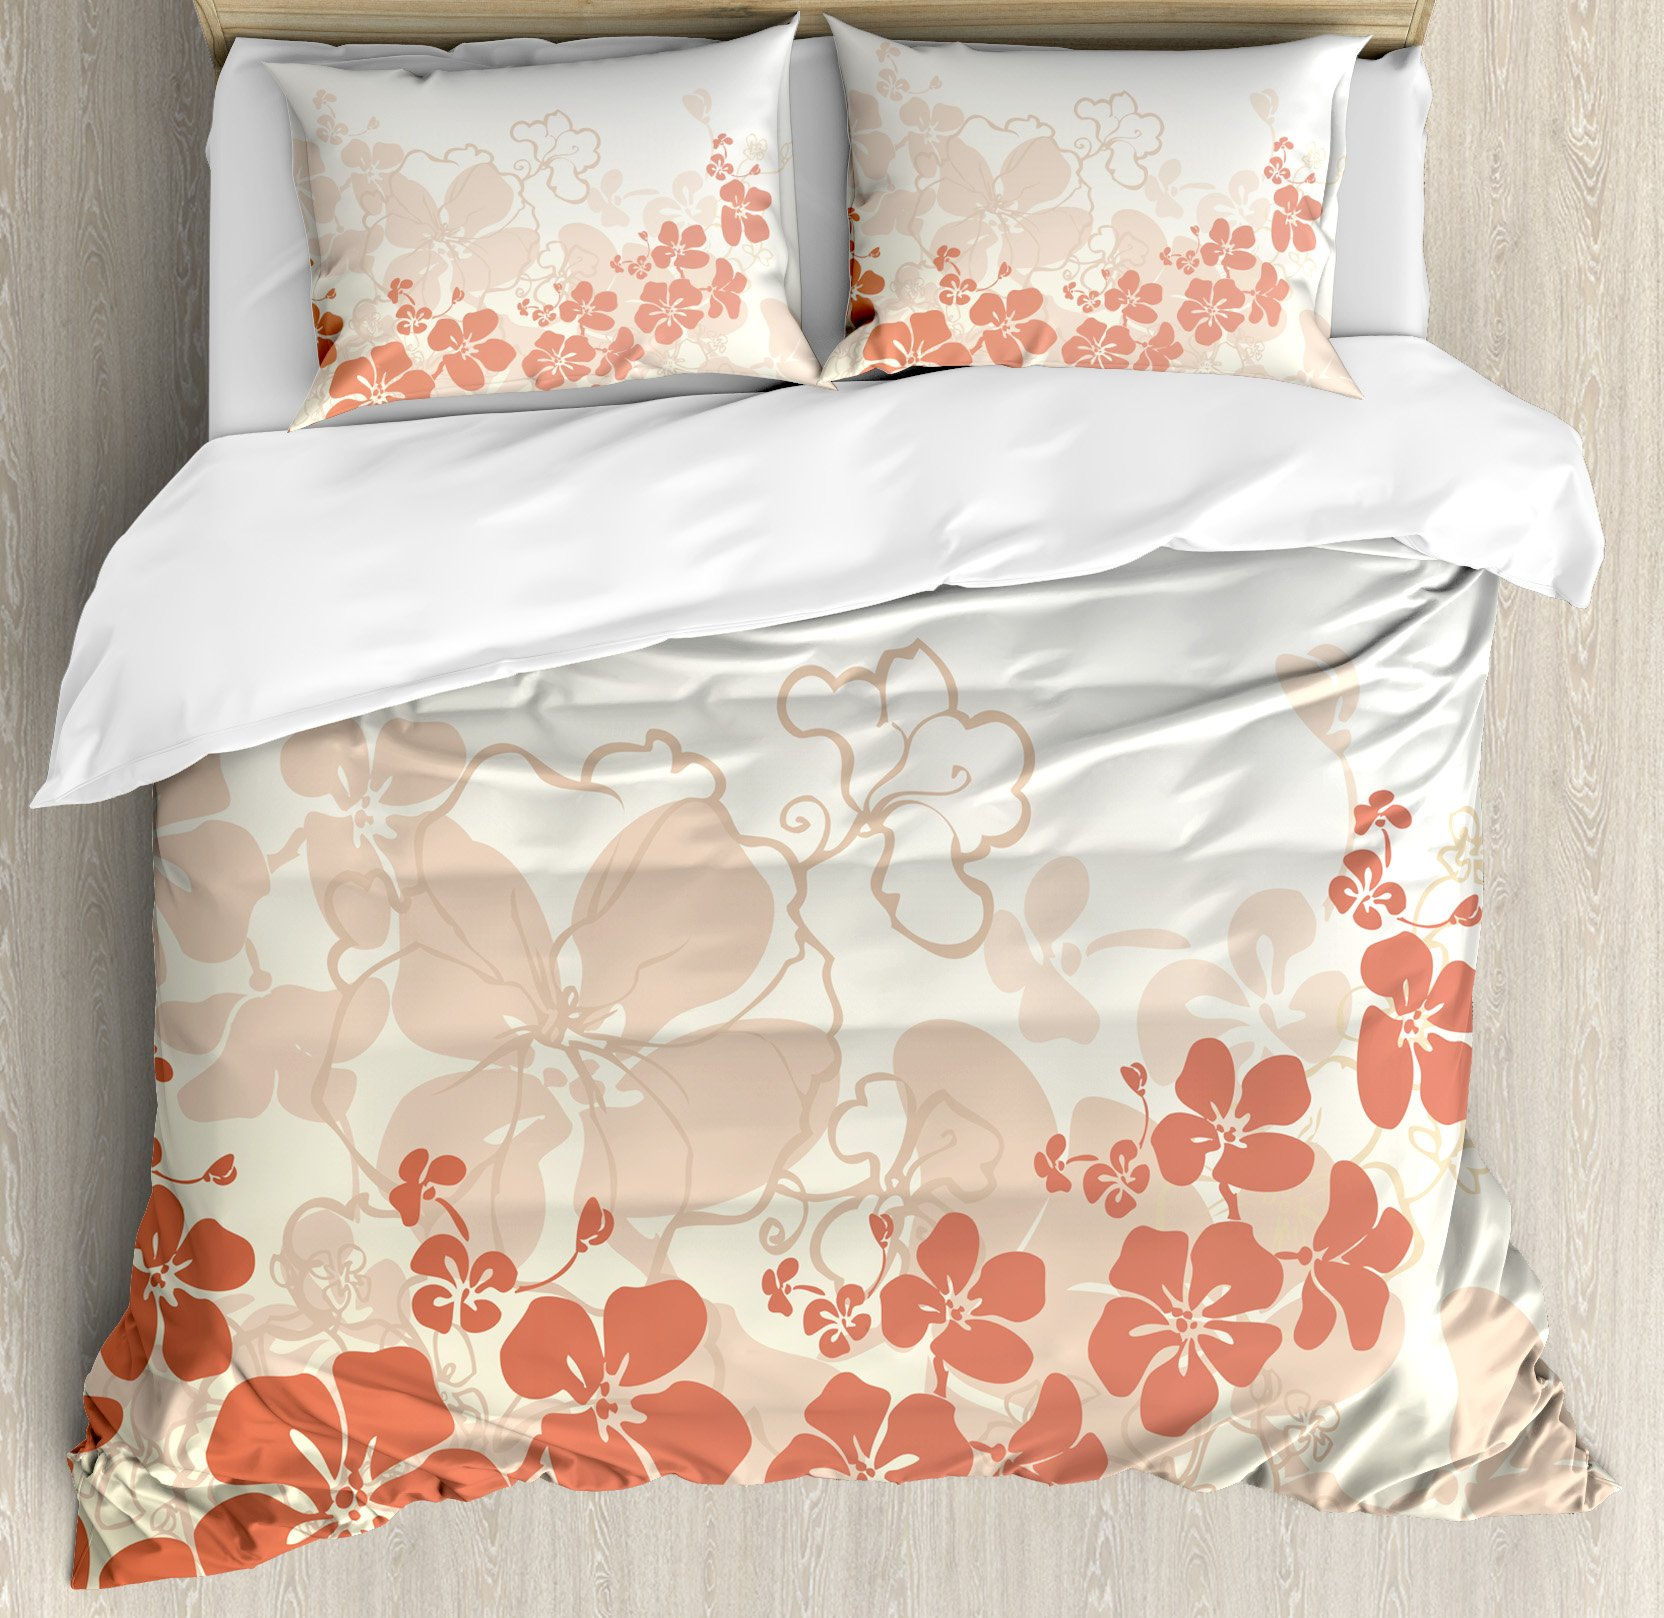 Ambesonne Hawaiian Duvet Cover Set Queen Size by, Hawaii Flowers Silhouette Tropical Plants Ornamental Floral Illustration, Decorative 3 Piece Bedding Set with 2 Pillow Shams, Fuchsia Salmon White